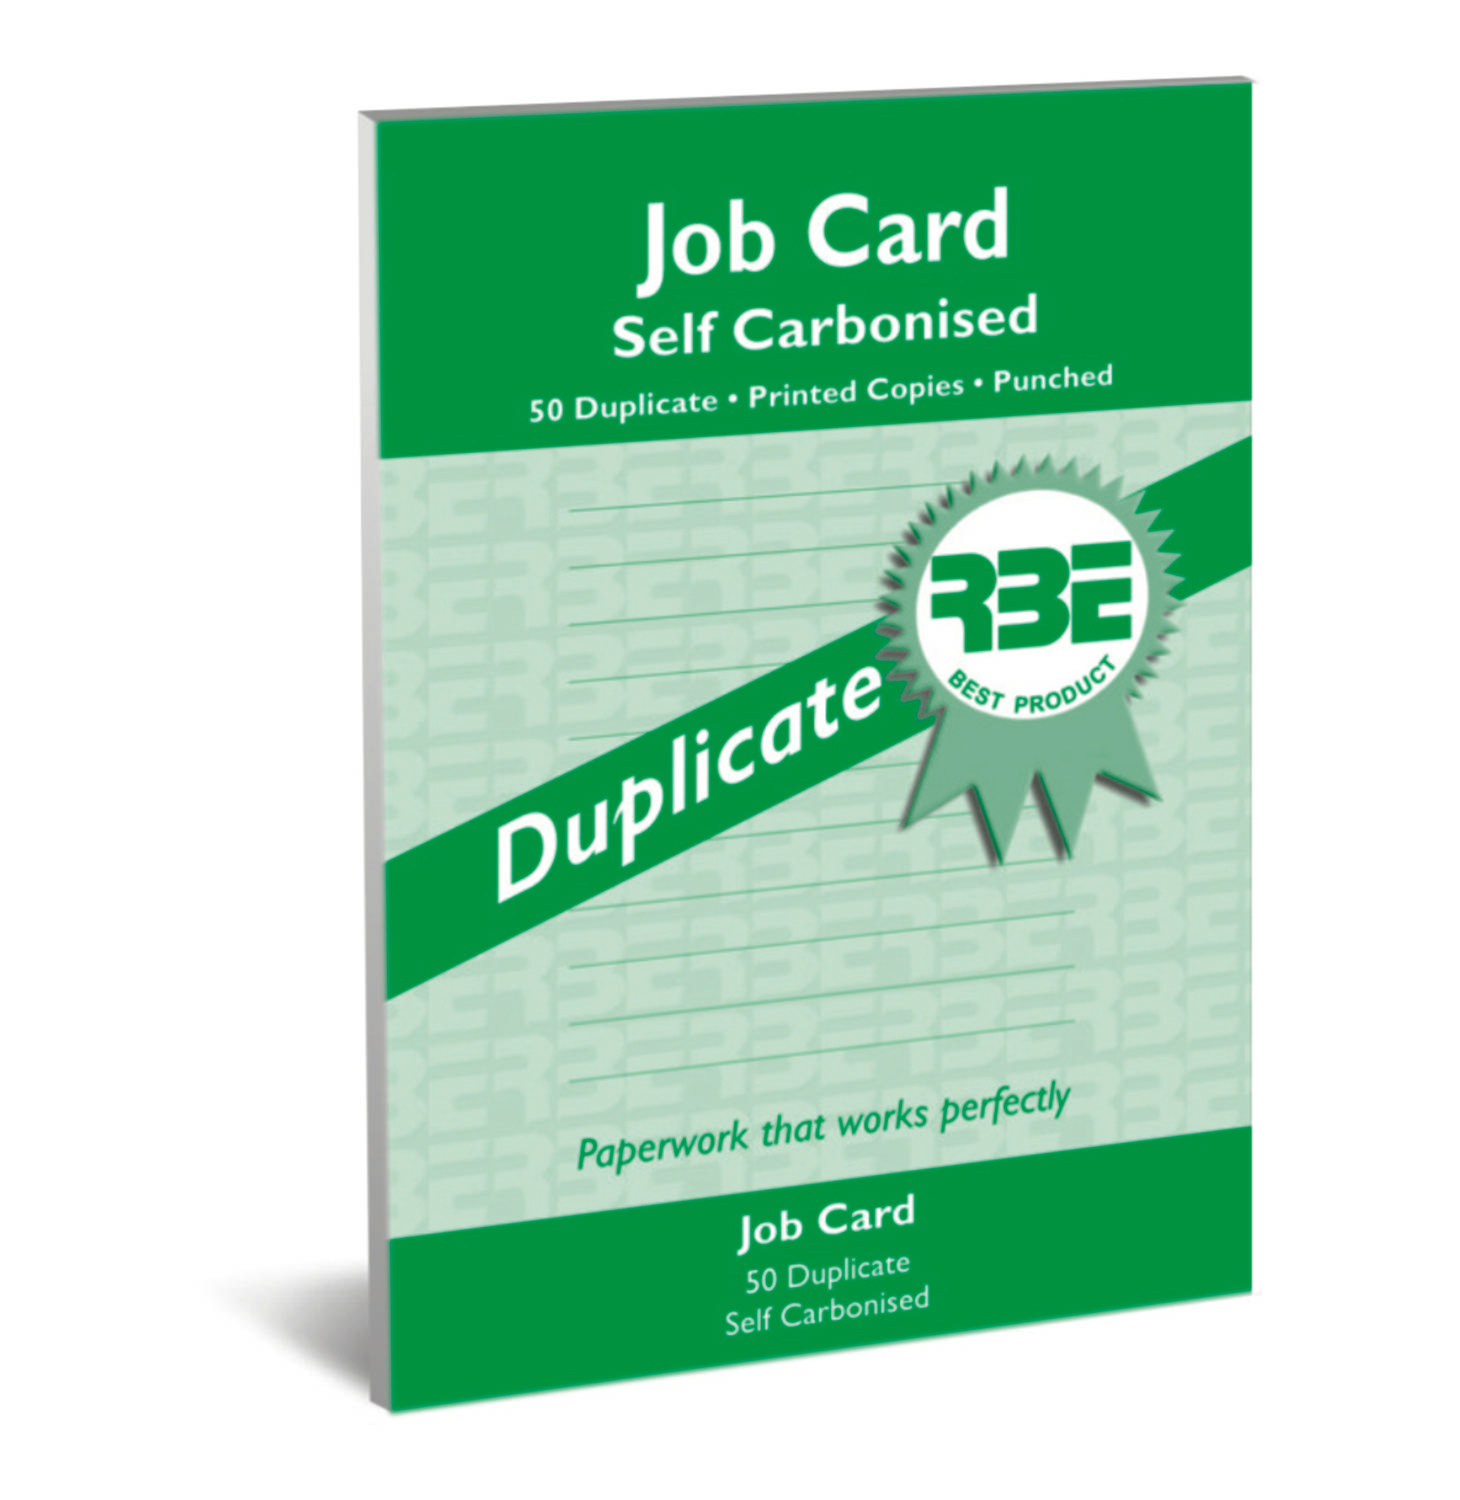 RBE Job Card A5 Duplicate